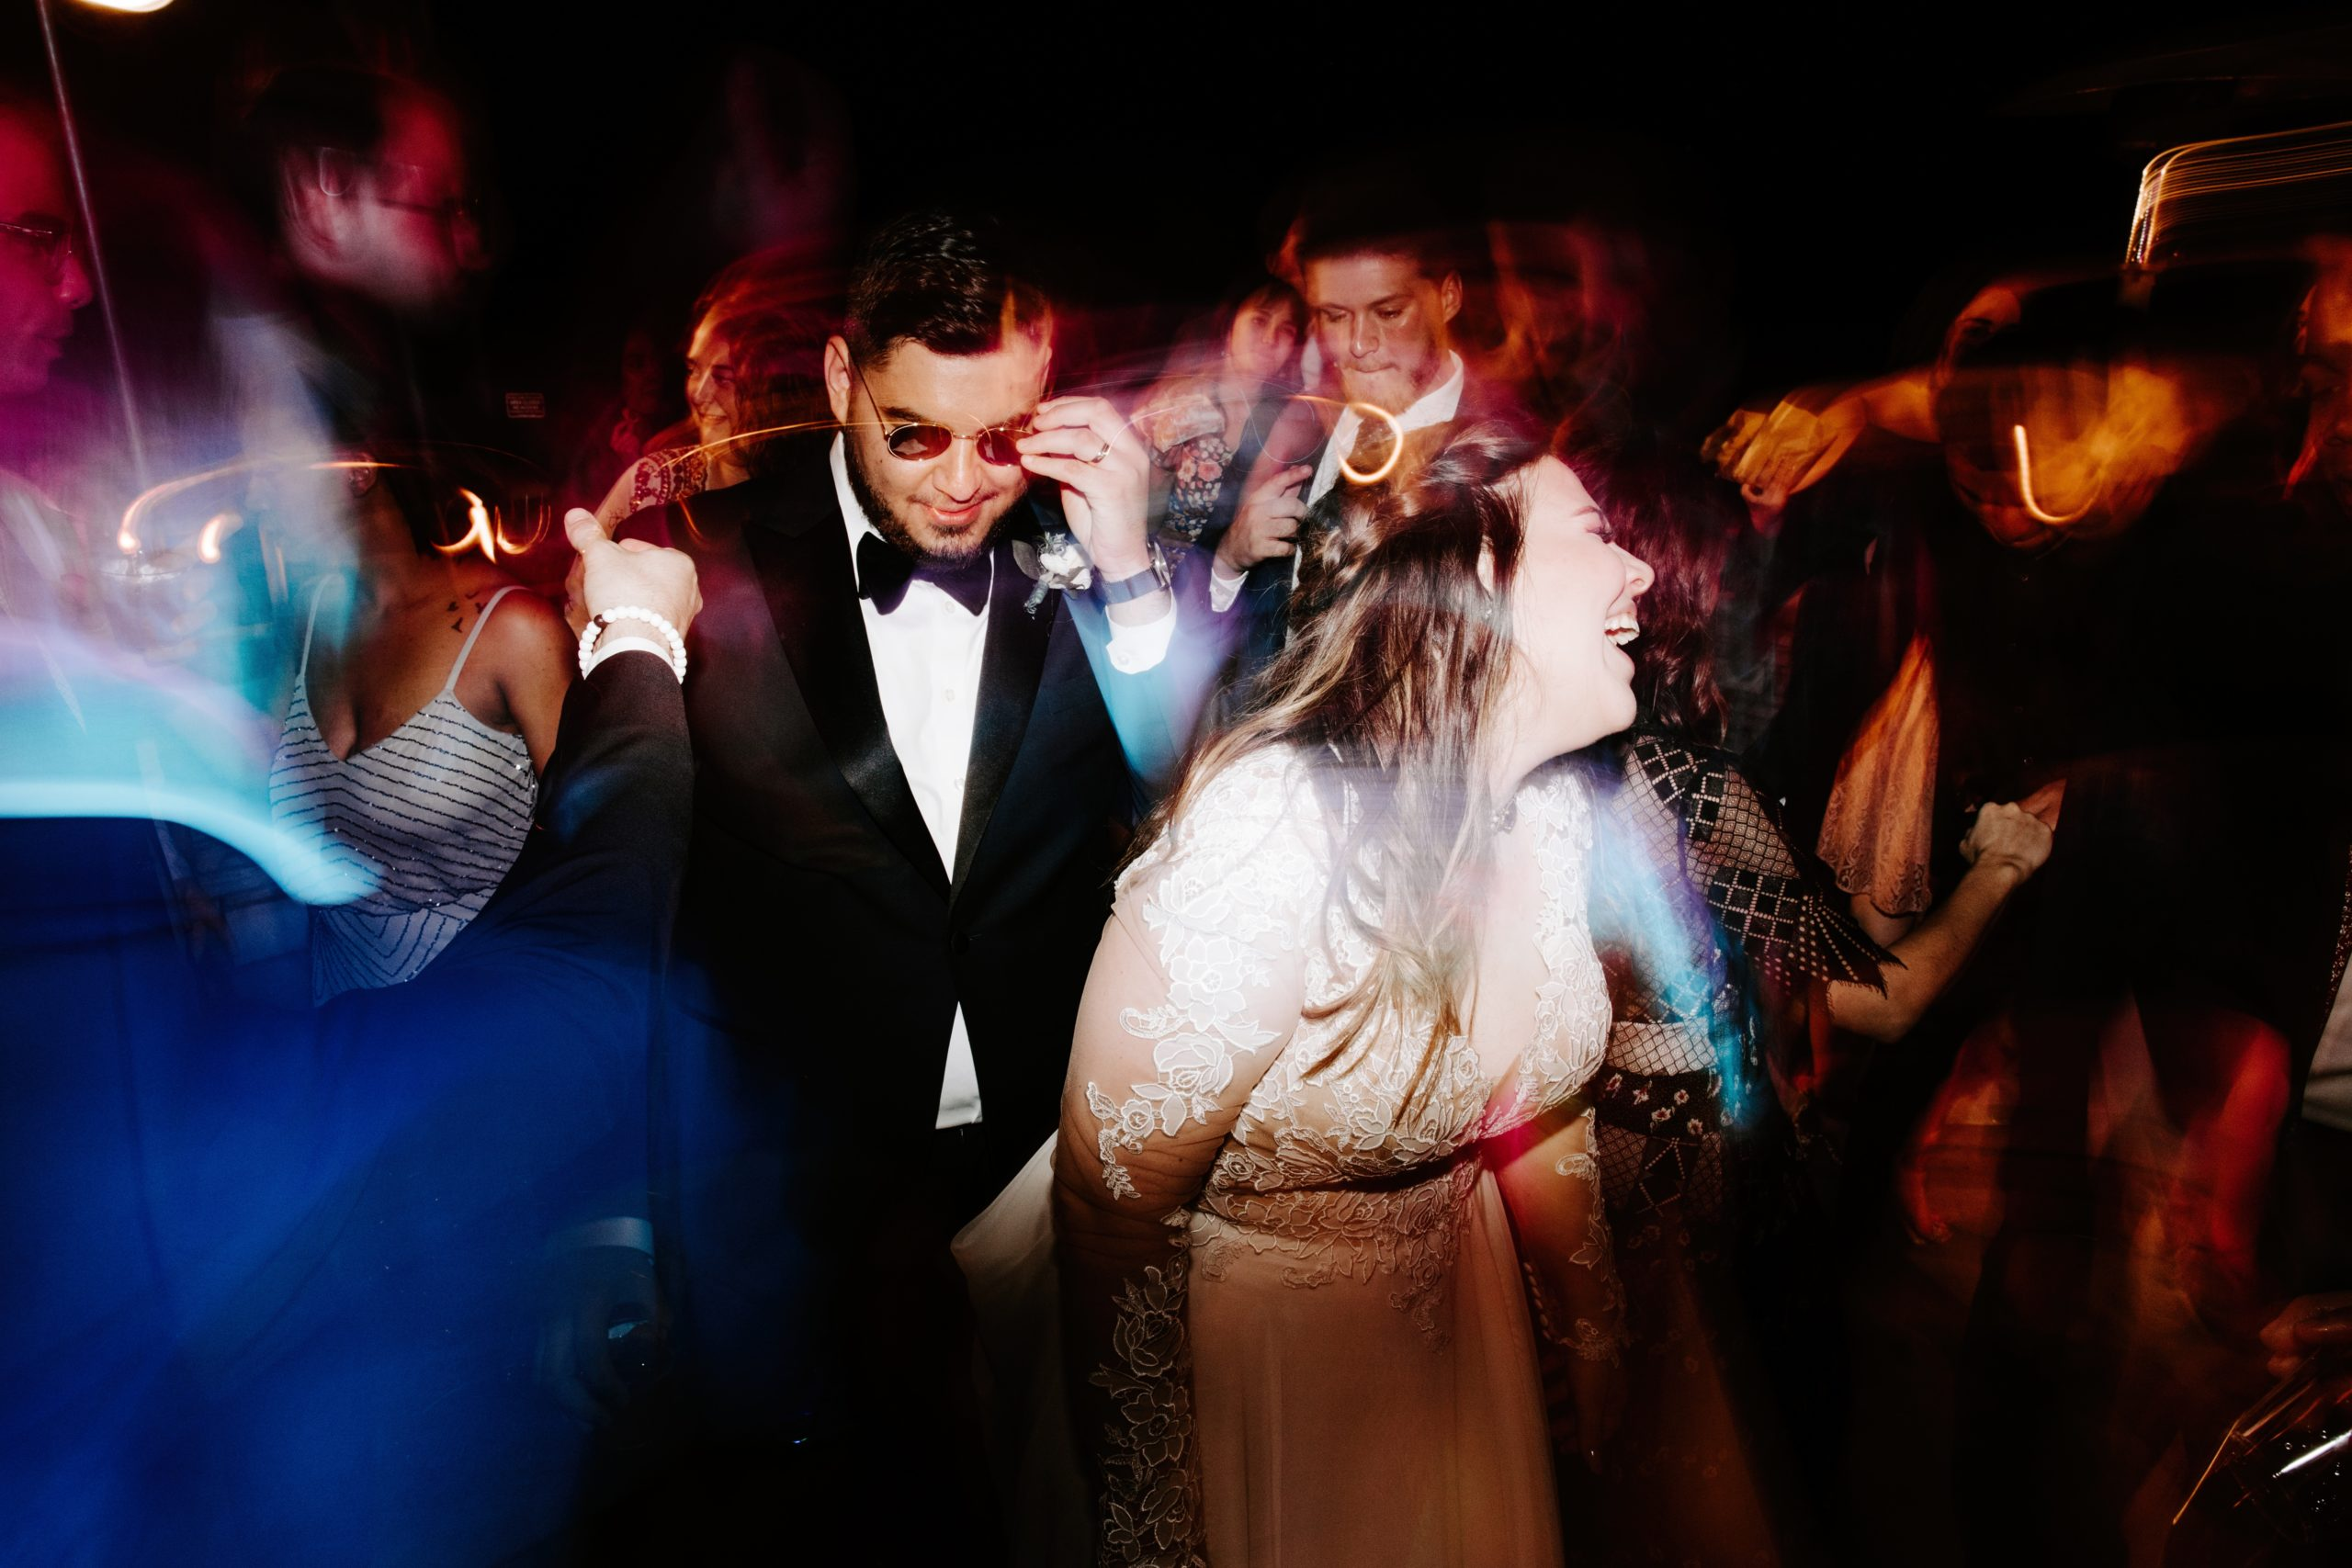 Dance party at wedding